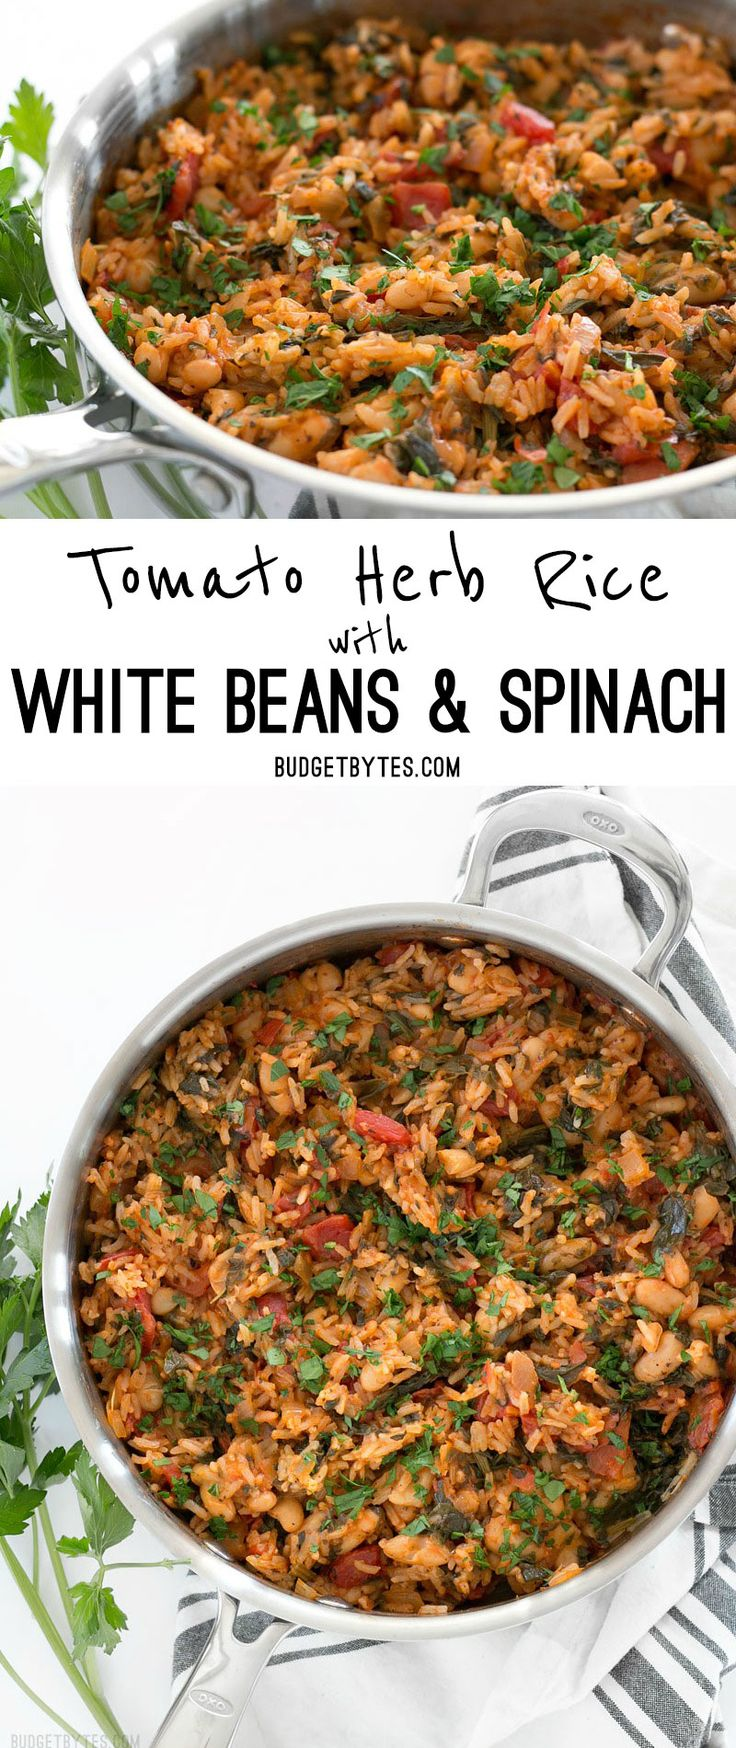 Tomato Herb Rice with White Beans and Spinach is a hearty and flavorful vegan dinner that will be loved by meat eaters and vegetarians alike. BudgetBytes.com